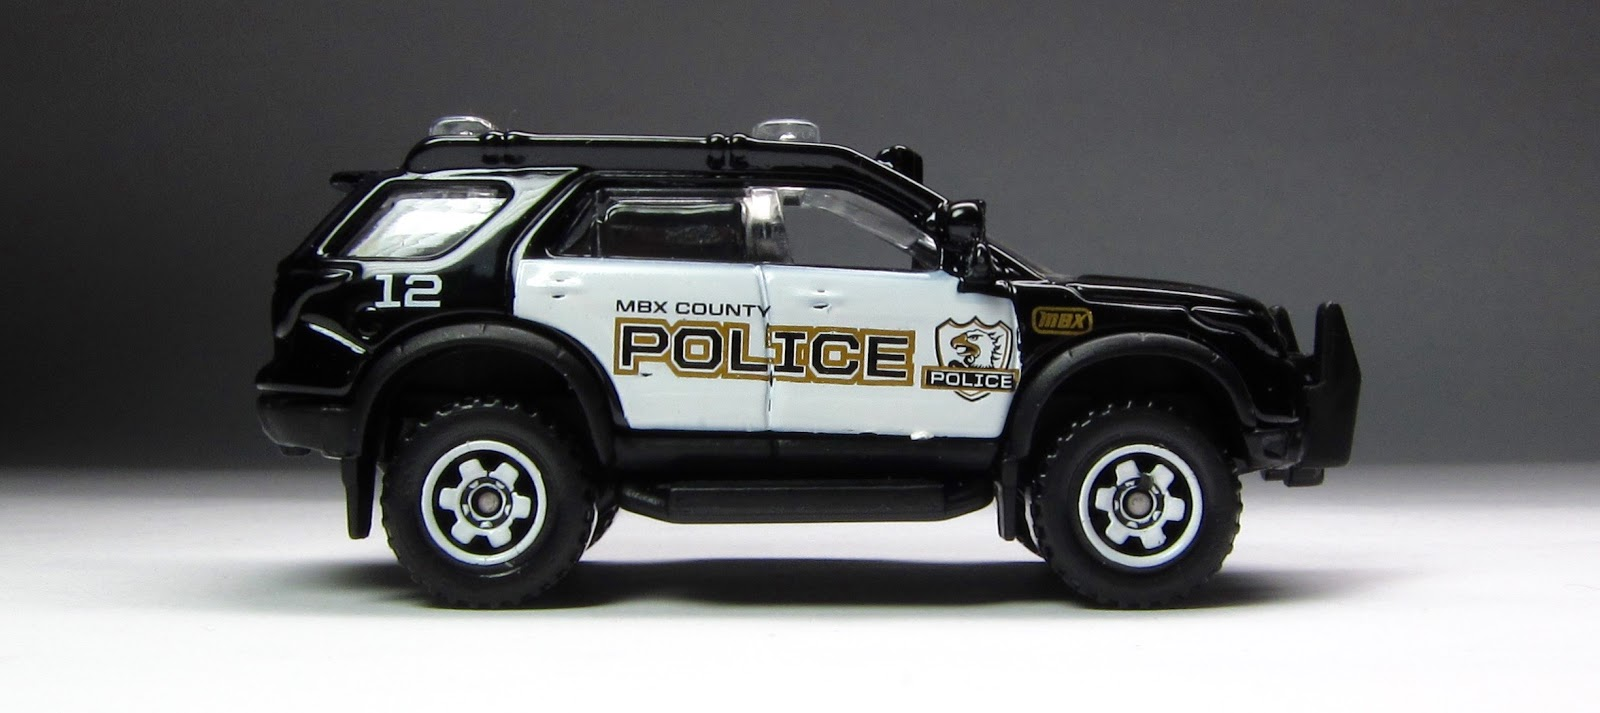 Toyota Diesel Truck >> The Last Golden Age of Matchbox: Black & White Police Cars... - AUTOCAR REGENERATION